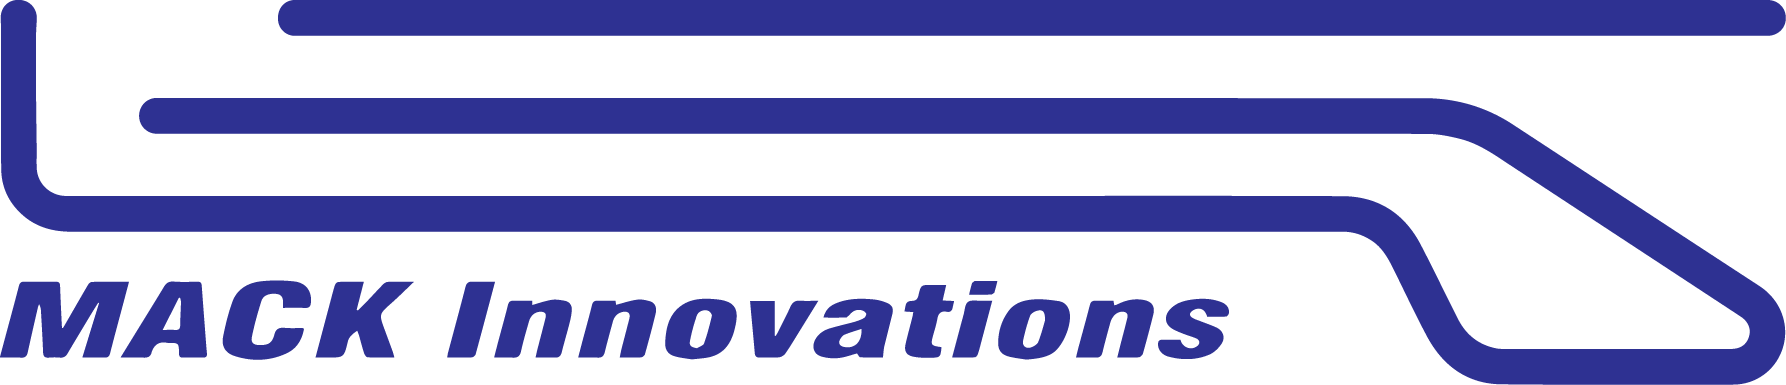 Mack Innovations Logo